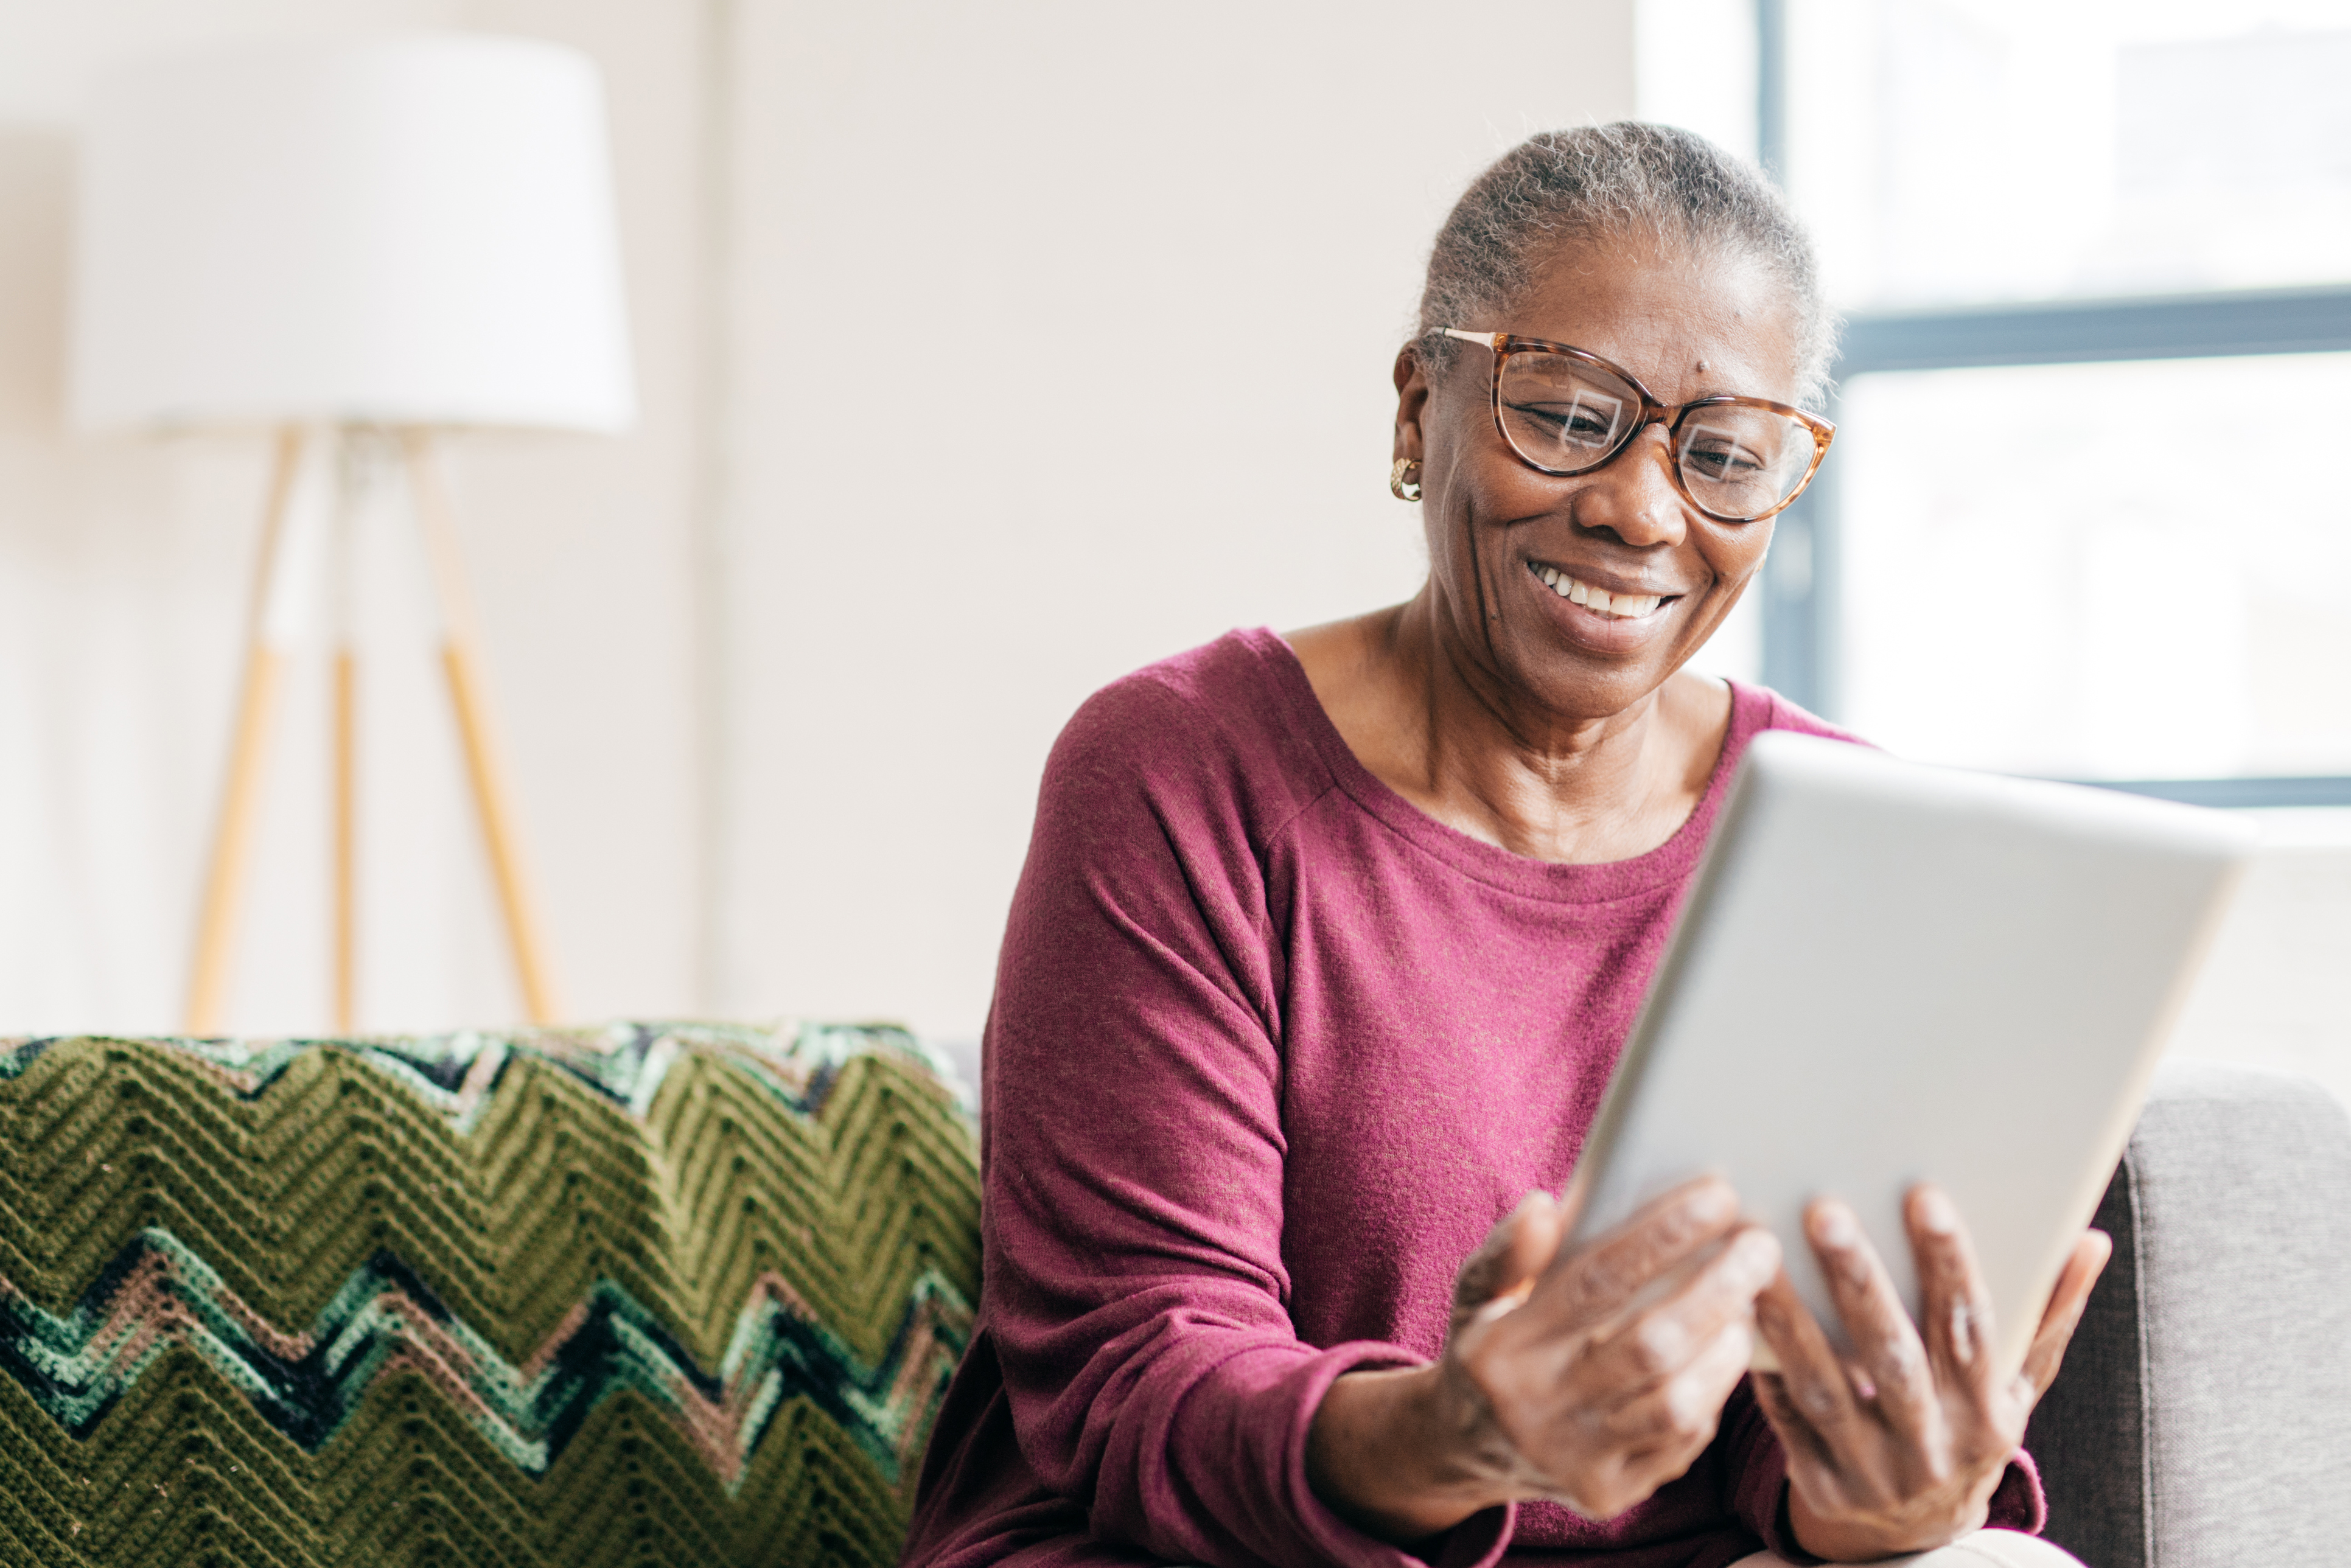 Technology gifts for senior adults can really improve their quality of life